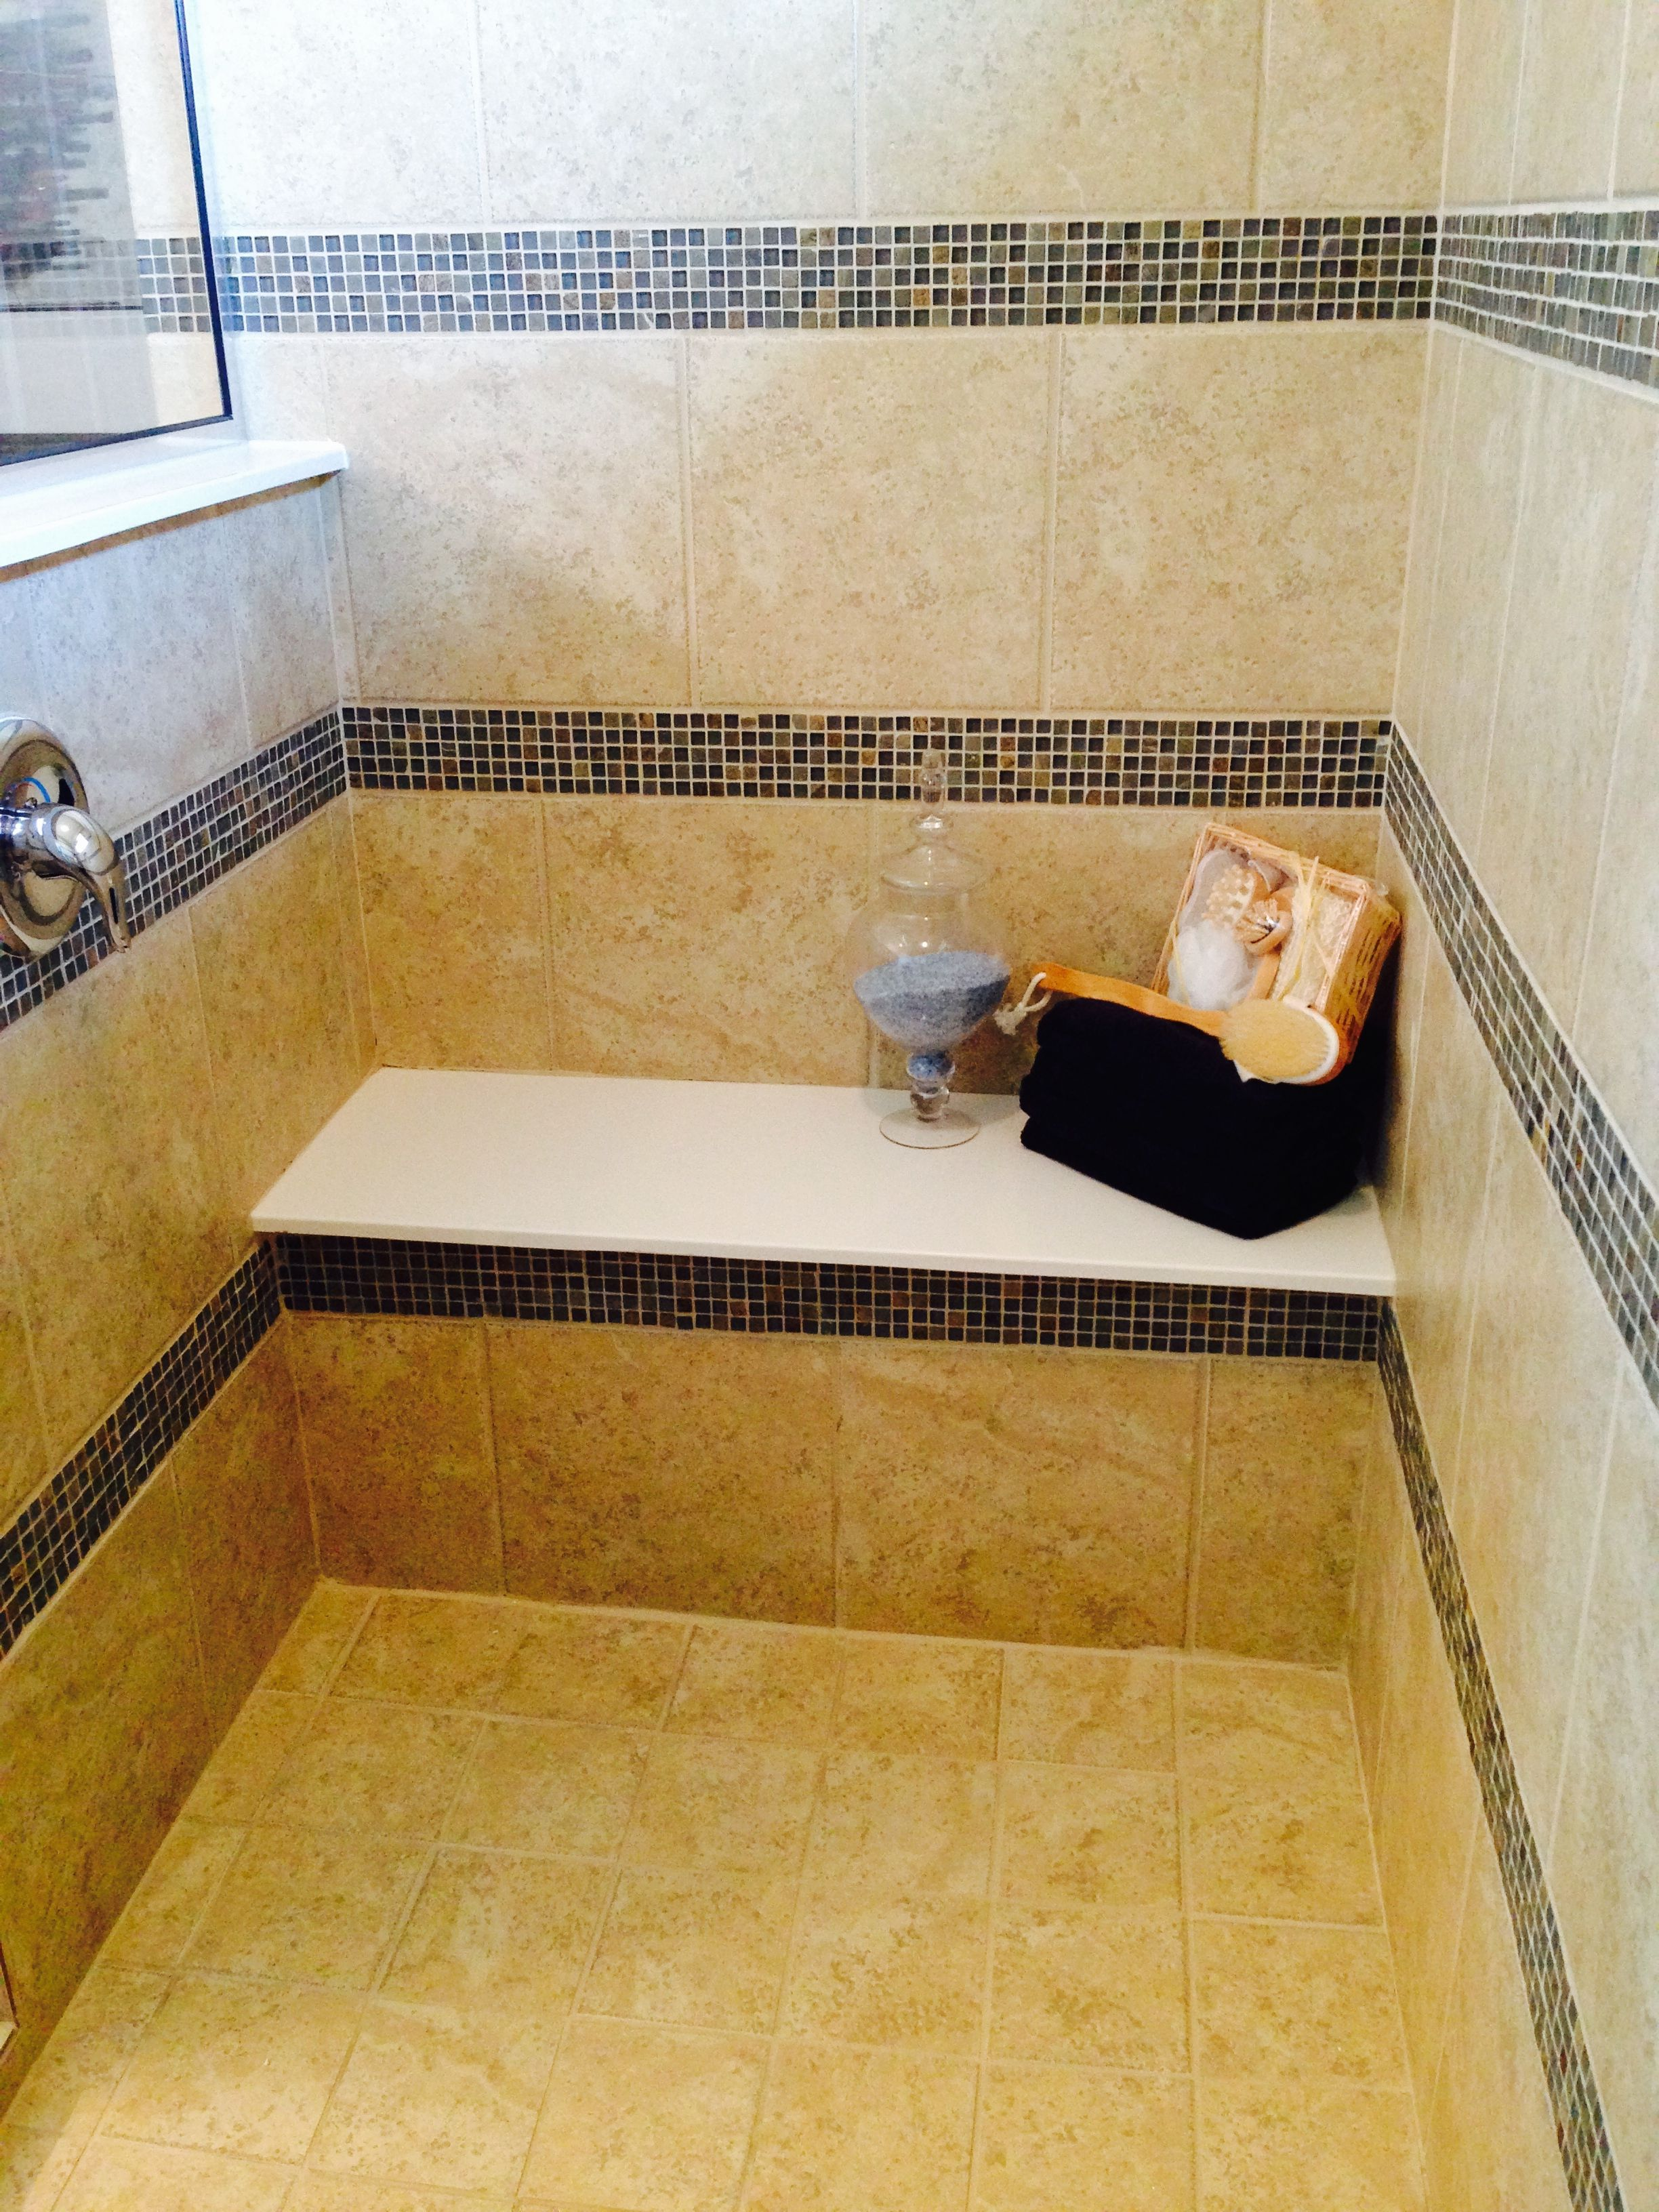 Cultured Marble Shower Seat, Ceramic Tile Surround With Mosaic Accent Liner  And Ceramic Tile Shower